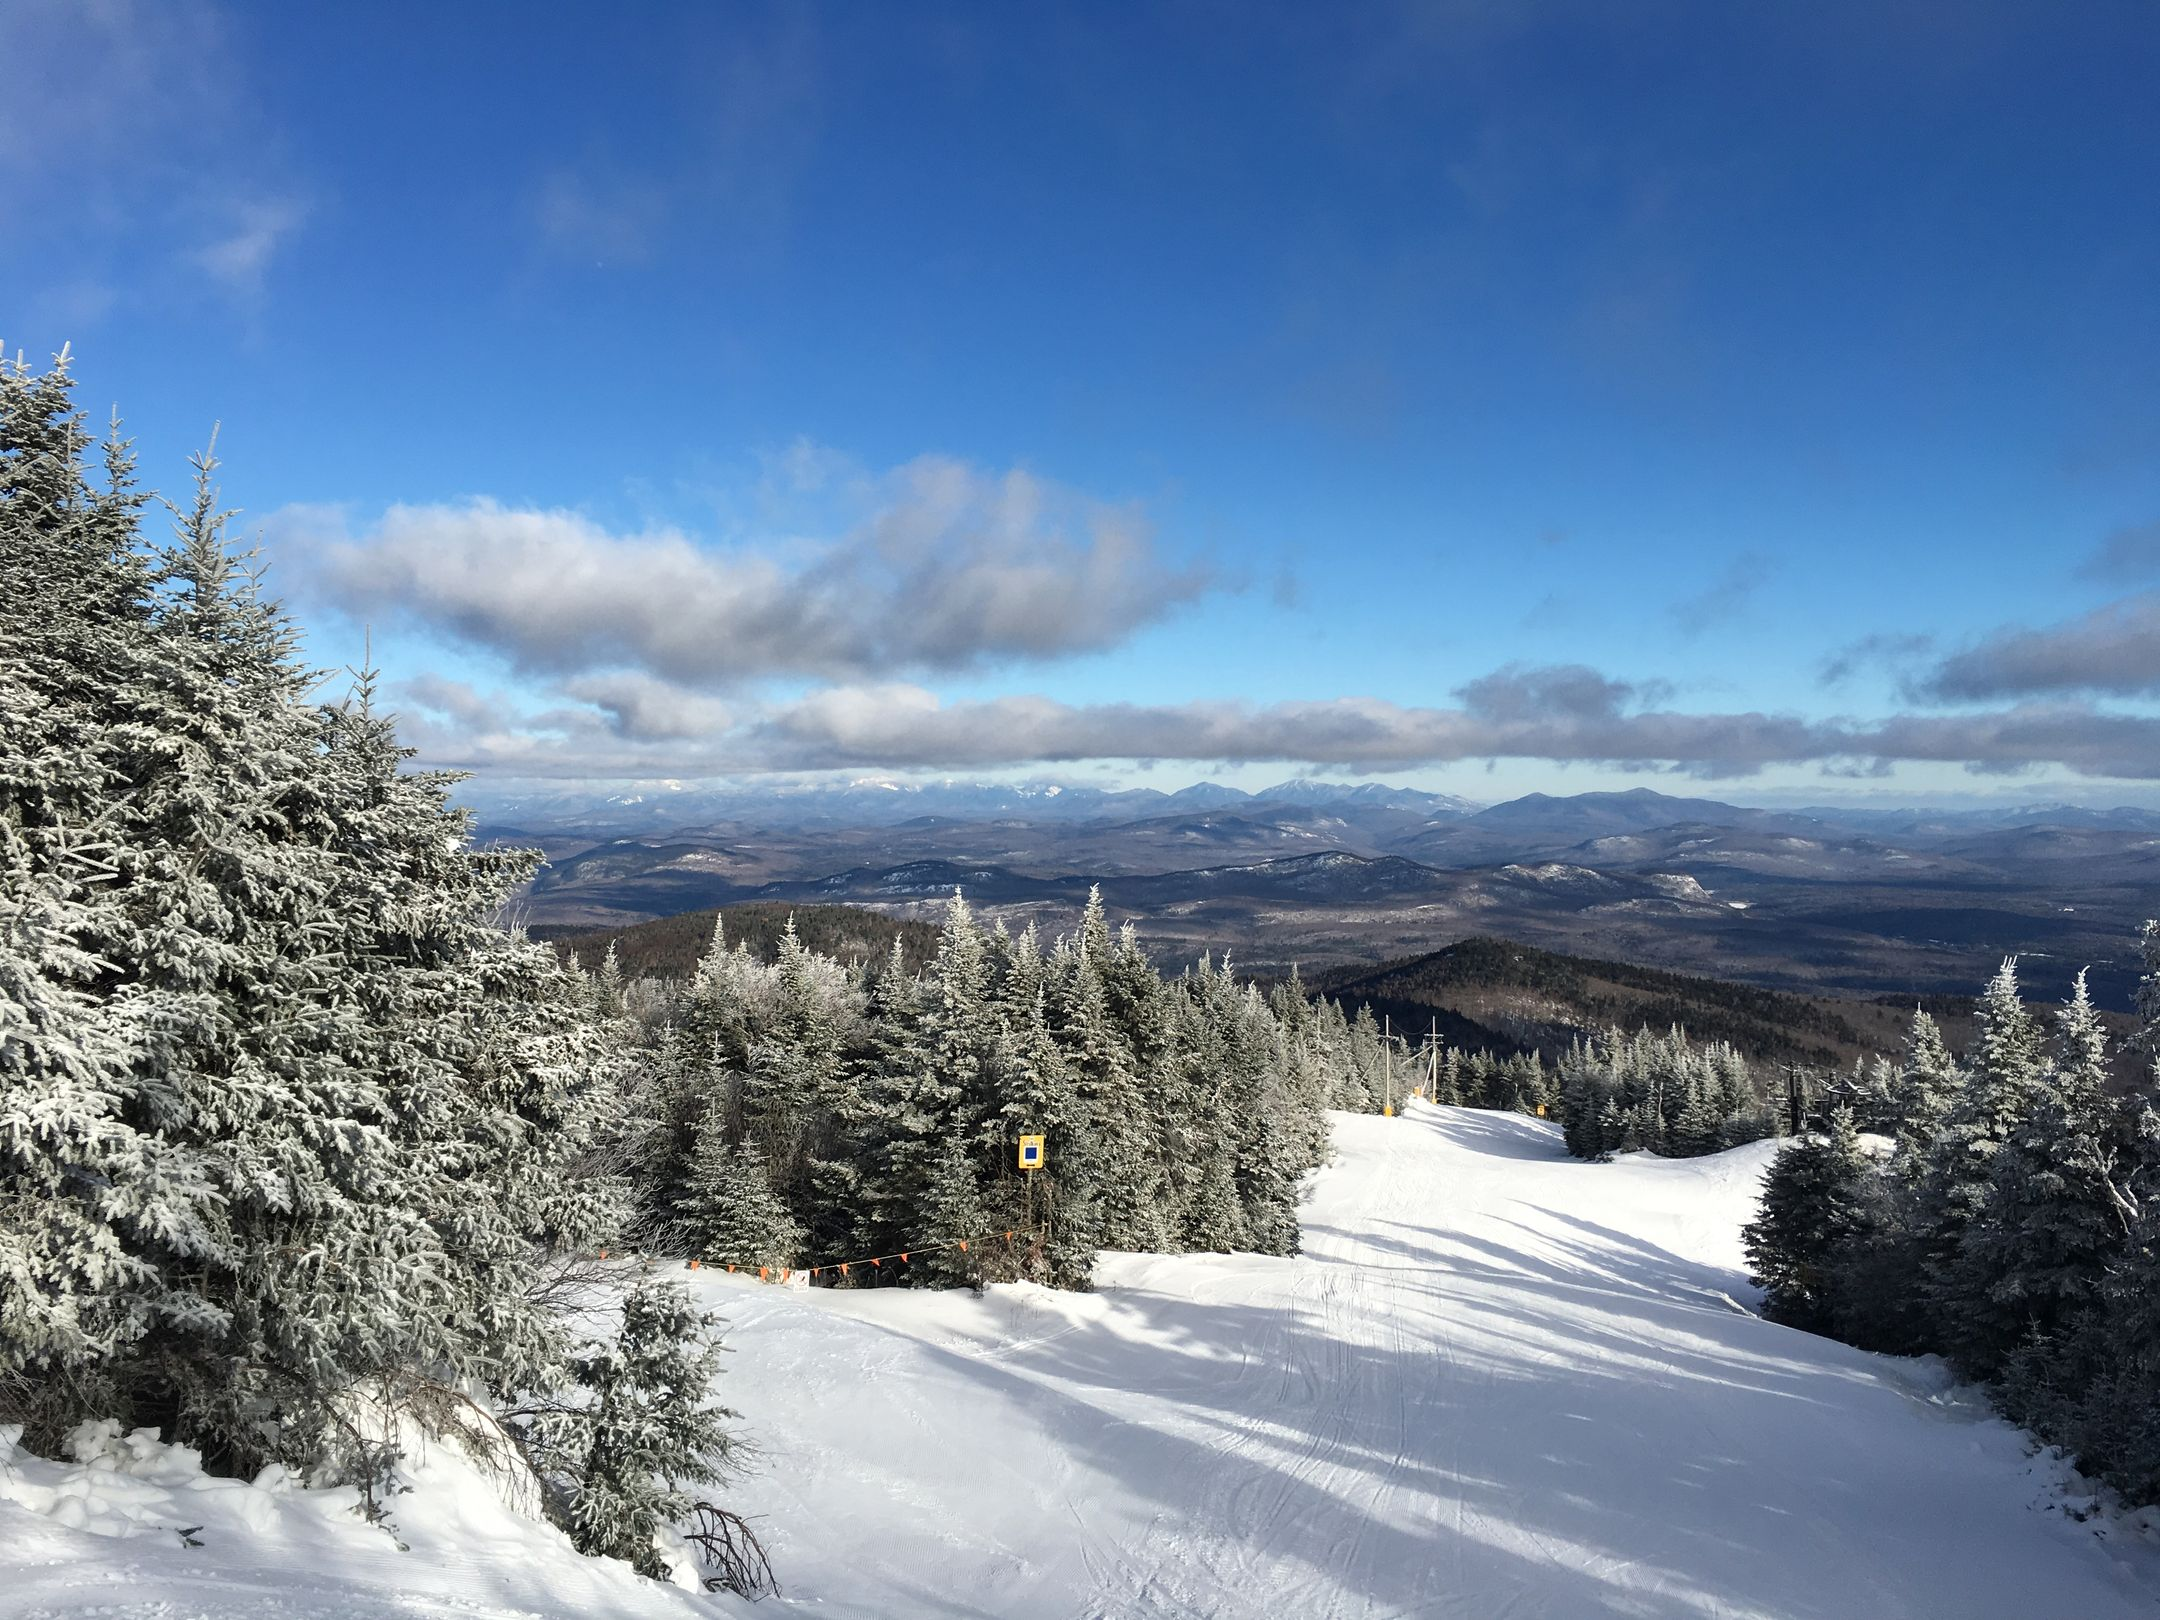 Skiing United States ski resort Gore Mountain ripatrip travel big